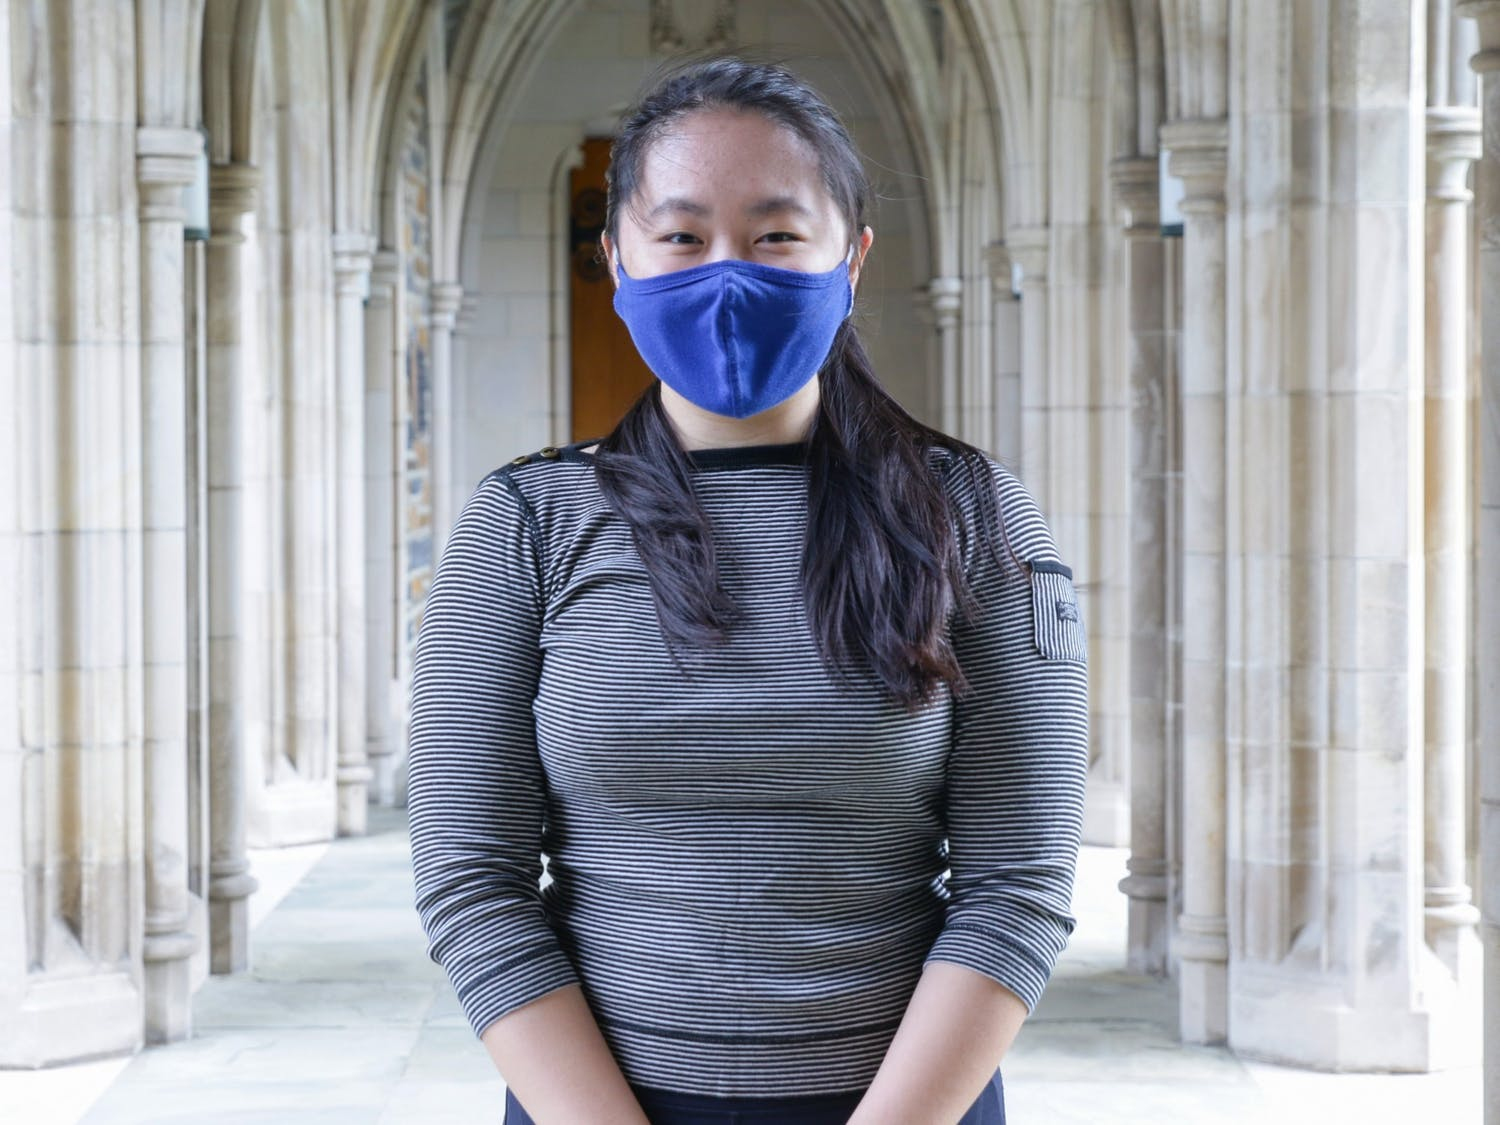 Sophomore Shari Tian is an RA in Brown dorm. She's found that in-person events have a better turnout than virtual ones.